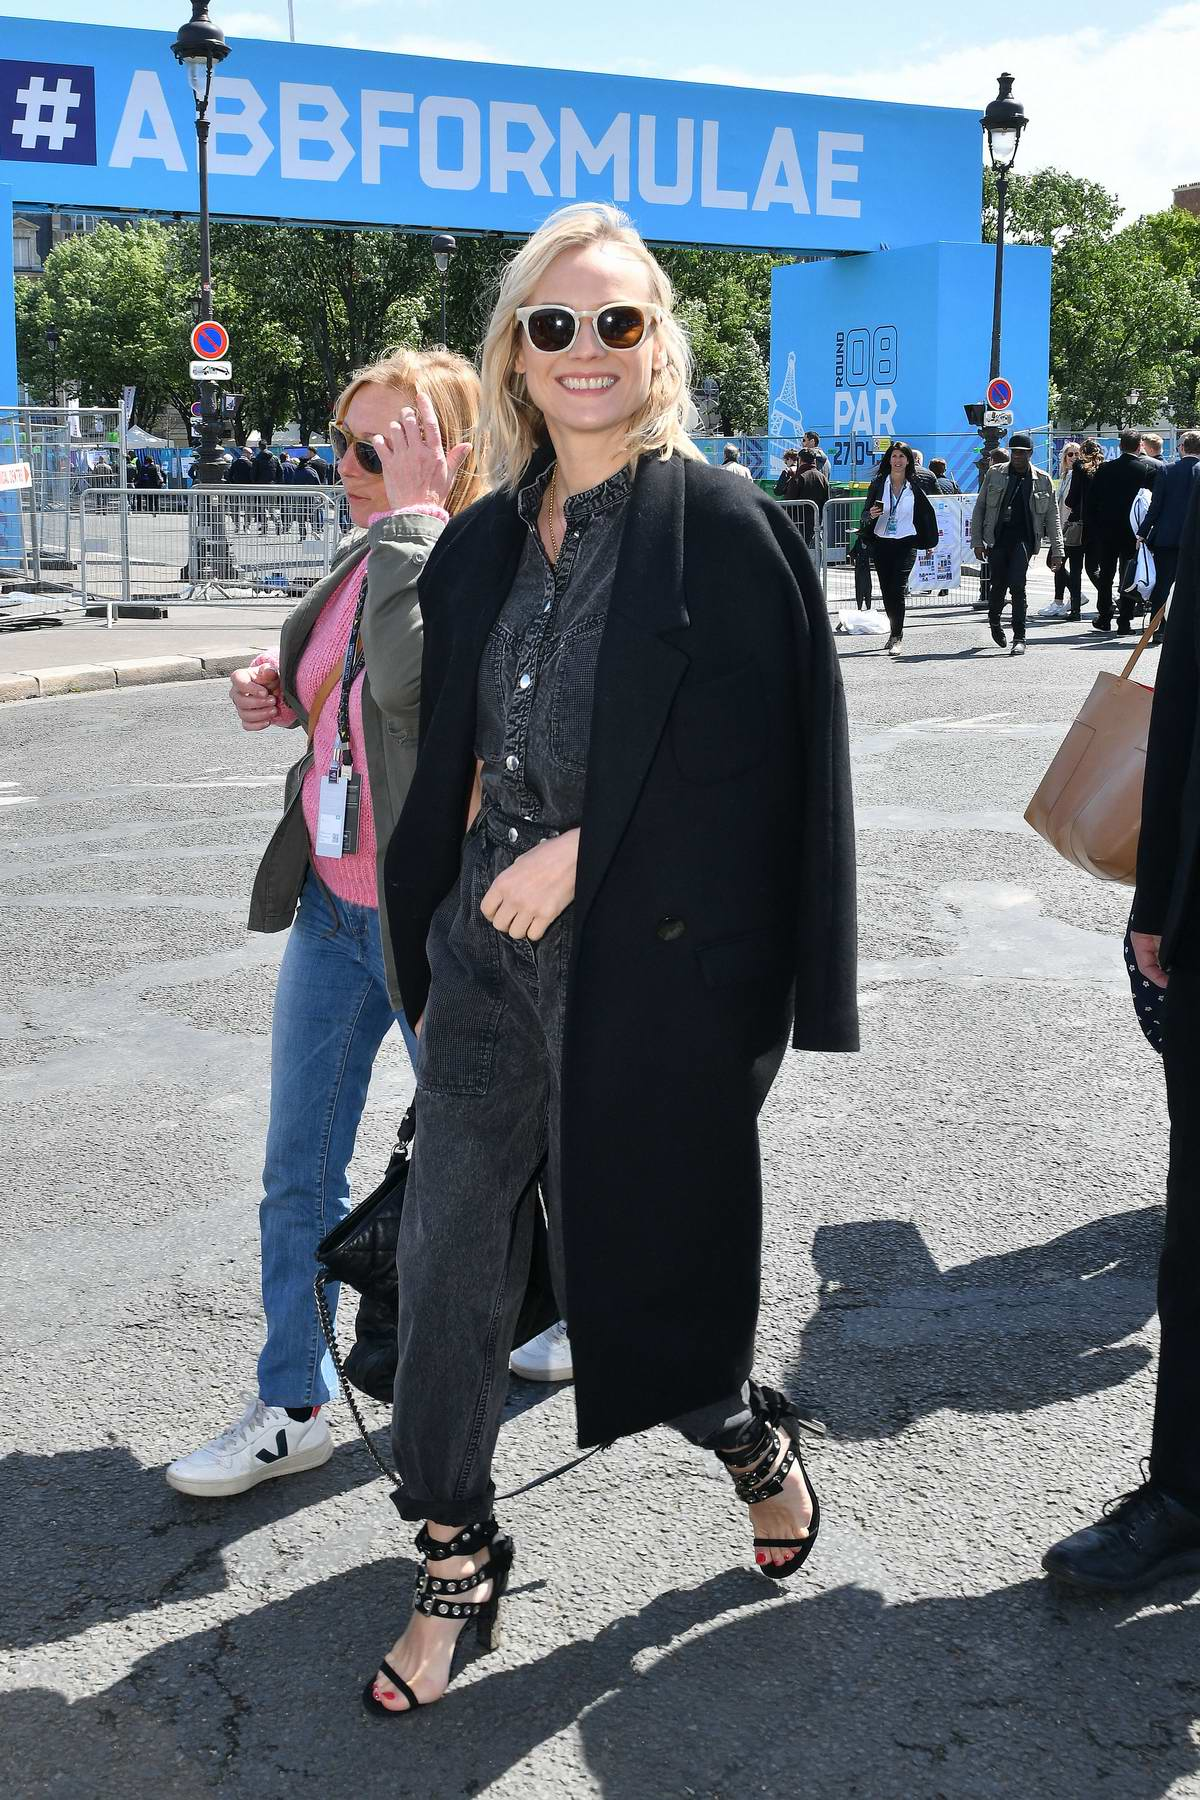 Diane Kruger visits the stands prior to the Formula E Grand Prix in Paris, France